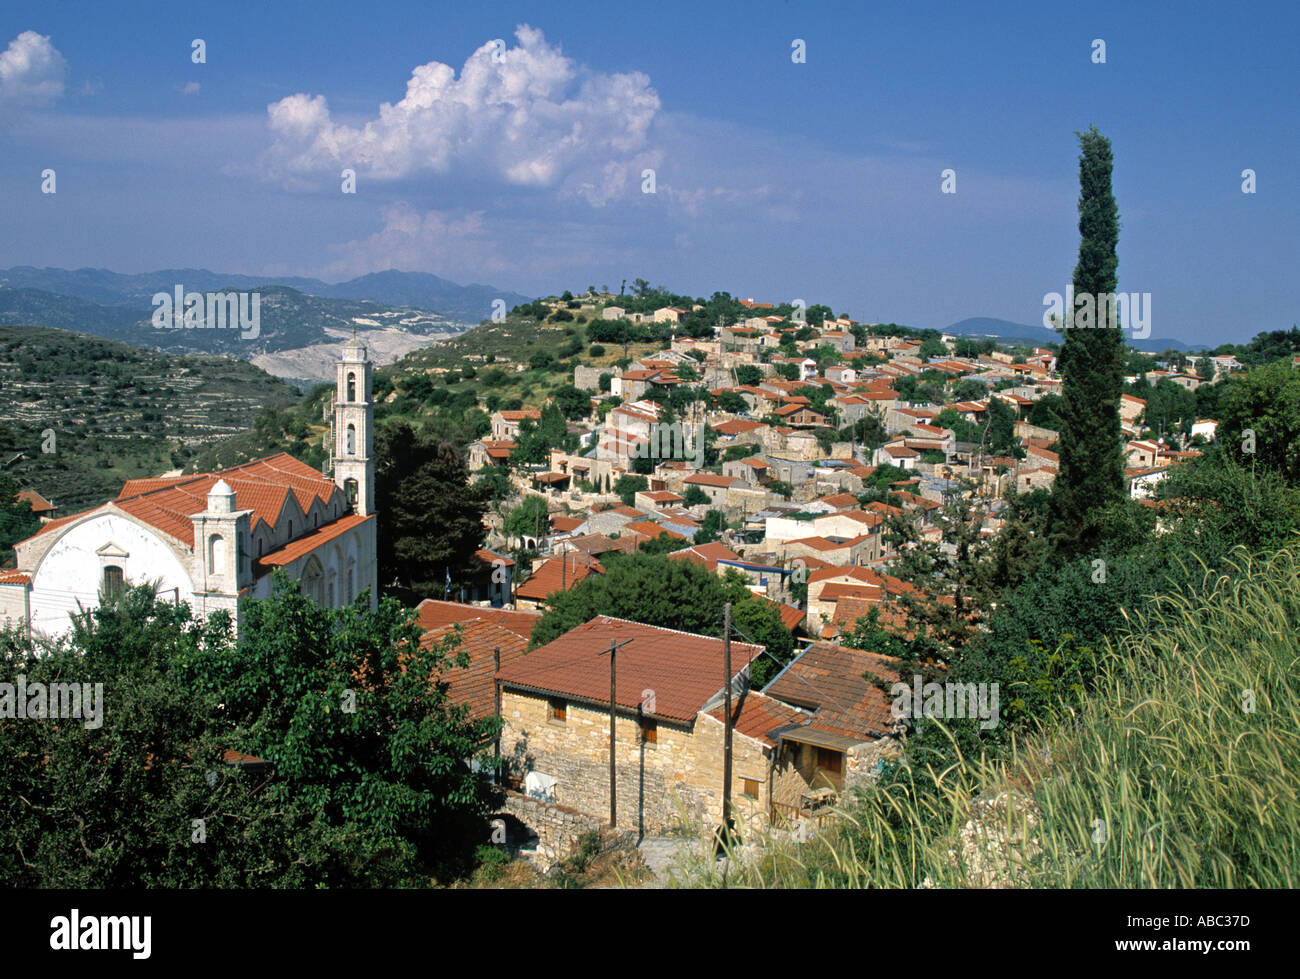 Lofou Village, Troodhos Foothills, Greek Cyprus - Stock Image